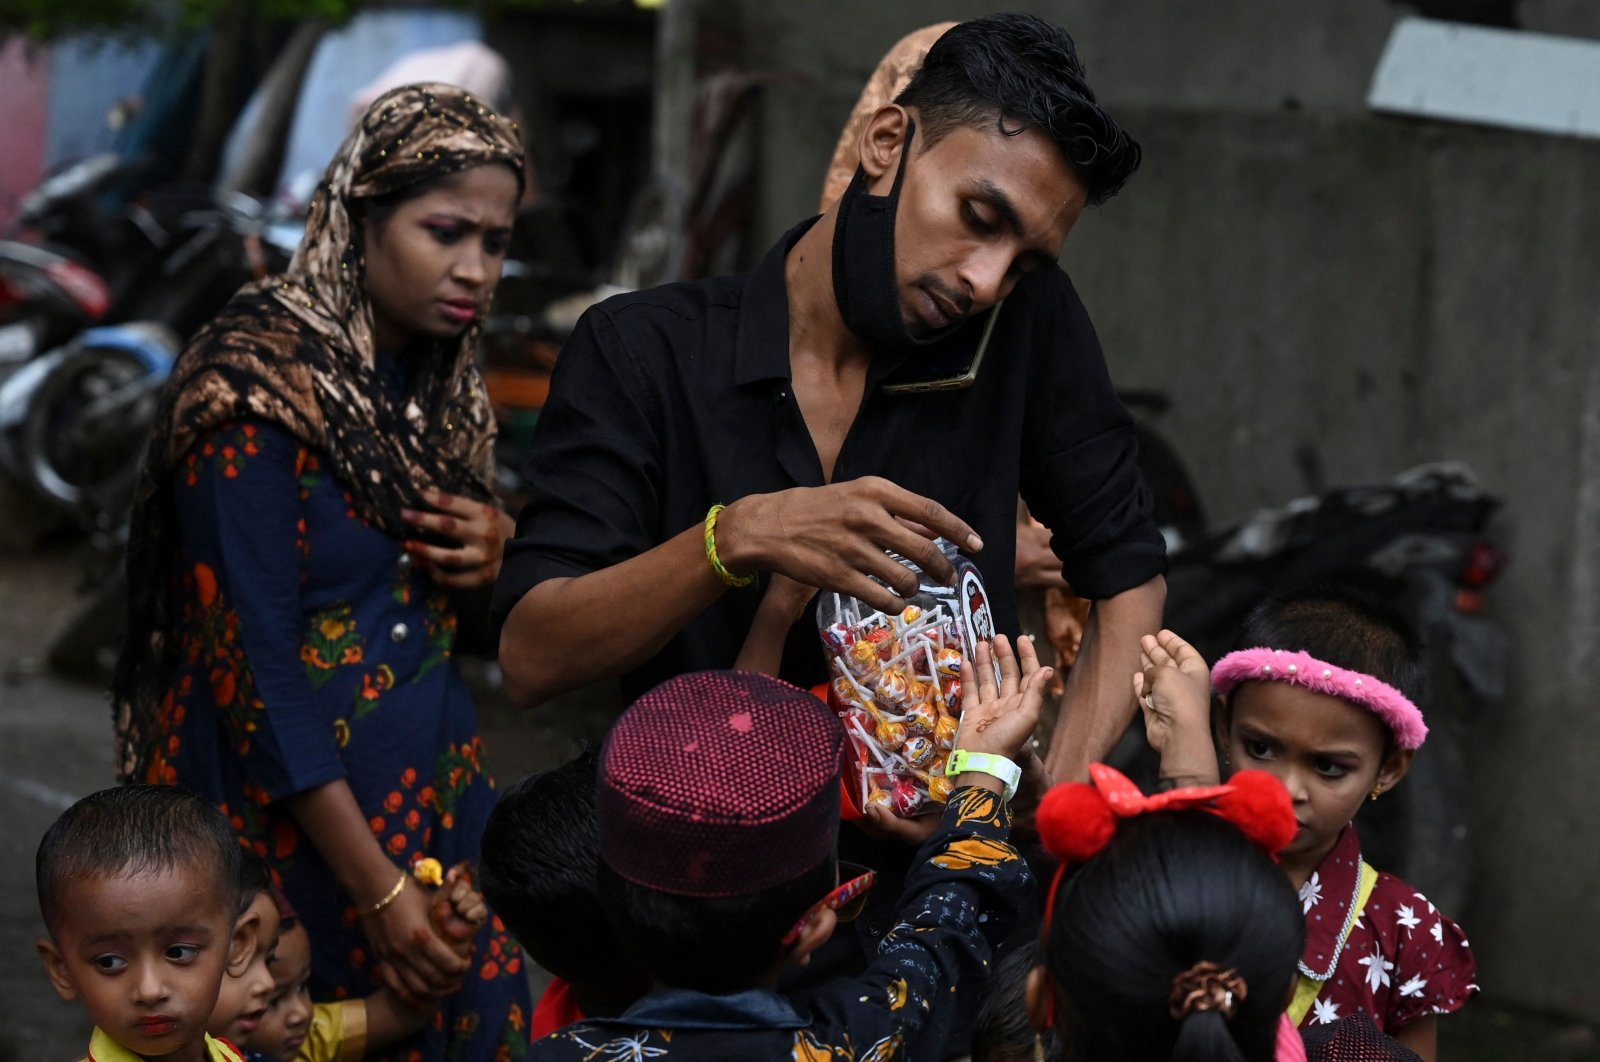 A Rohingya Muslim refugee (C) distributes candy to children during Eid al-Adha, or the Festival of Sacrifice, at a refugee camp on the outskirts of Chennai, India, on July 21, 2021. (AFP Photo)